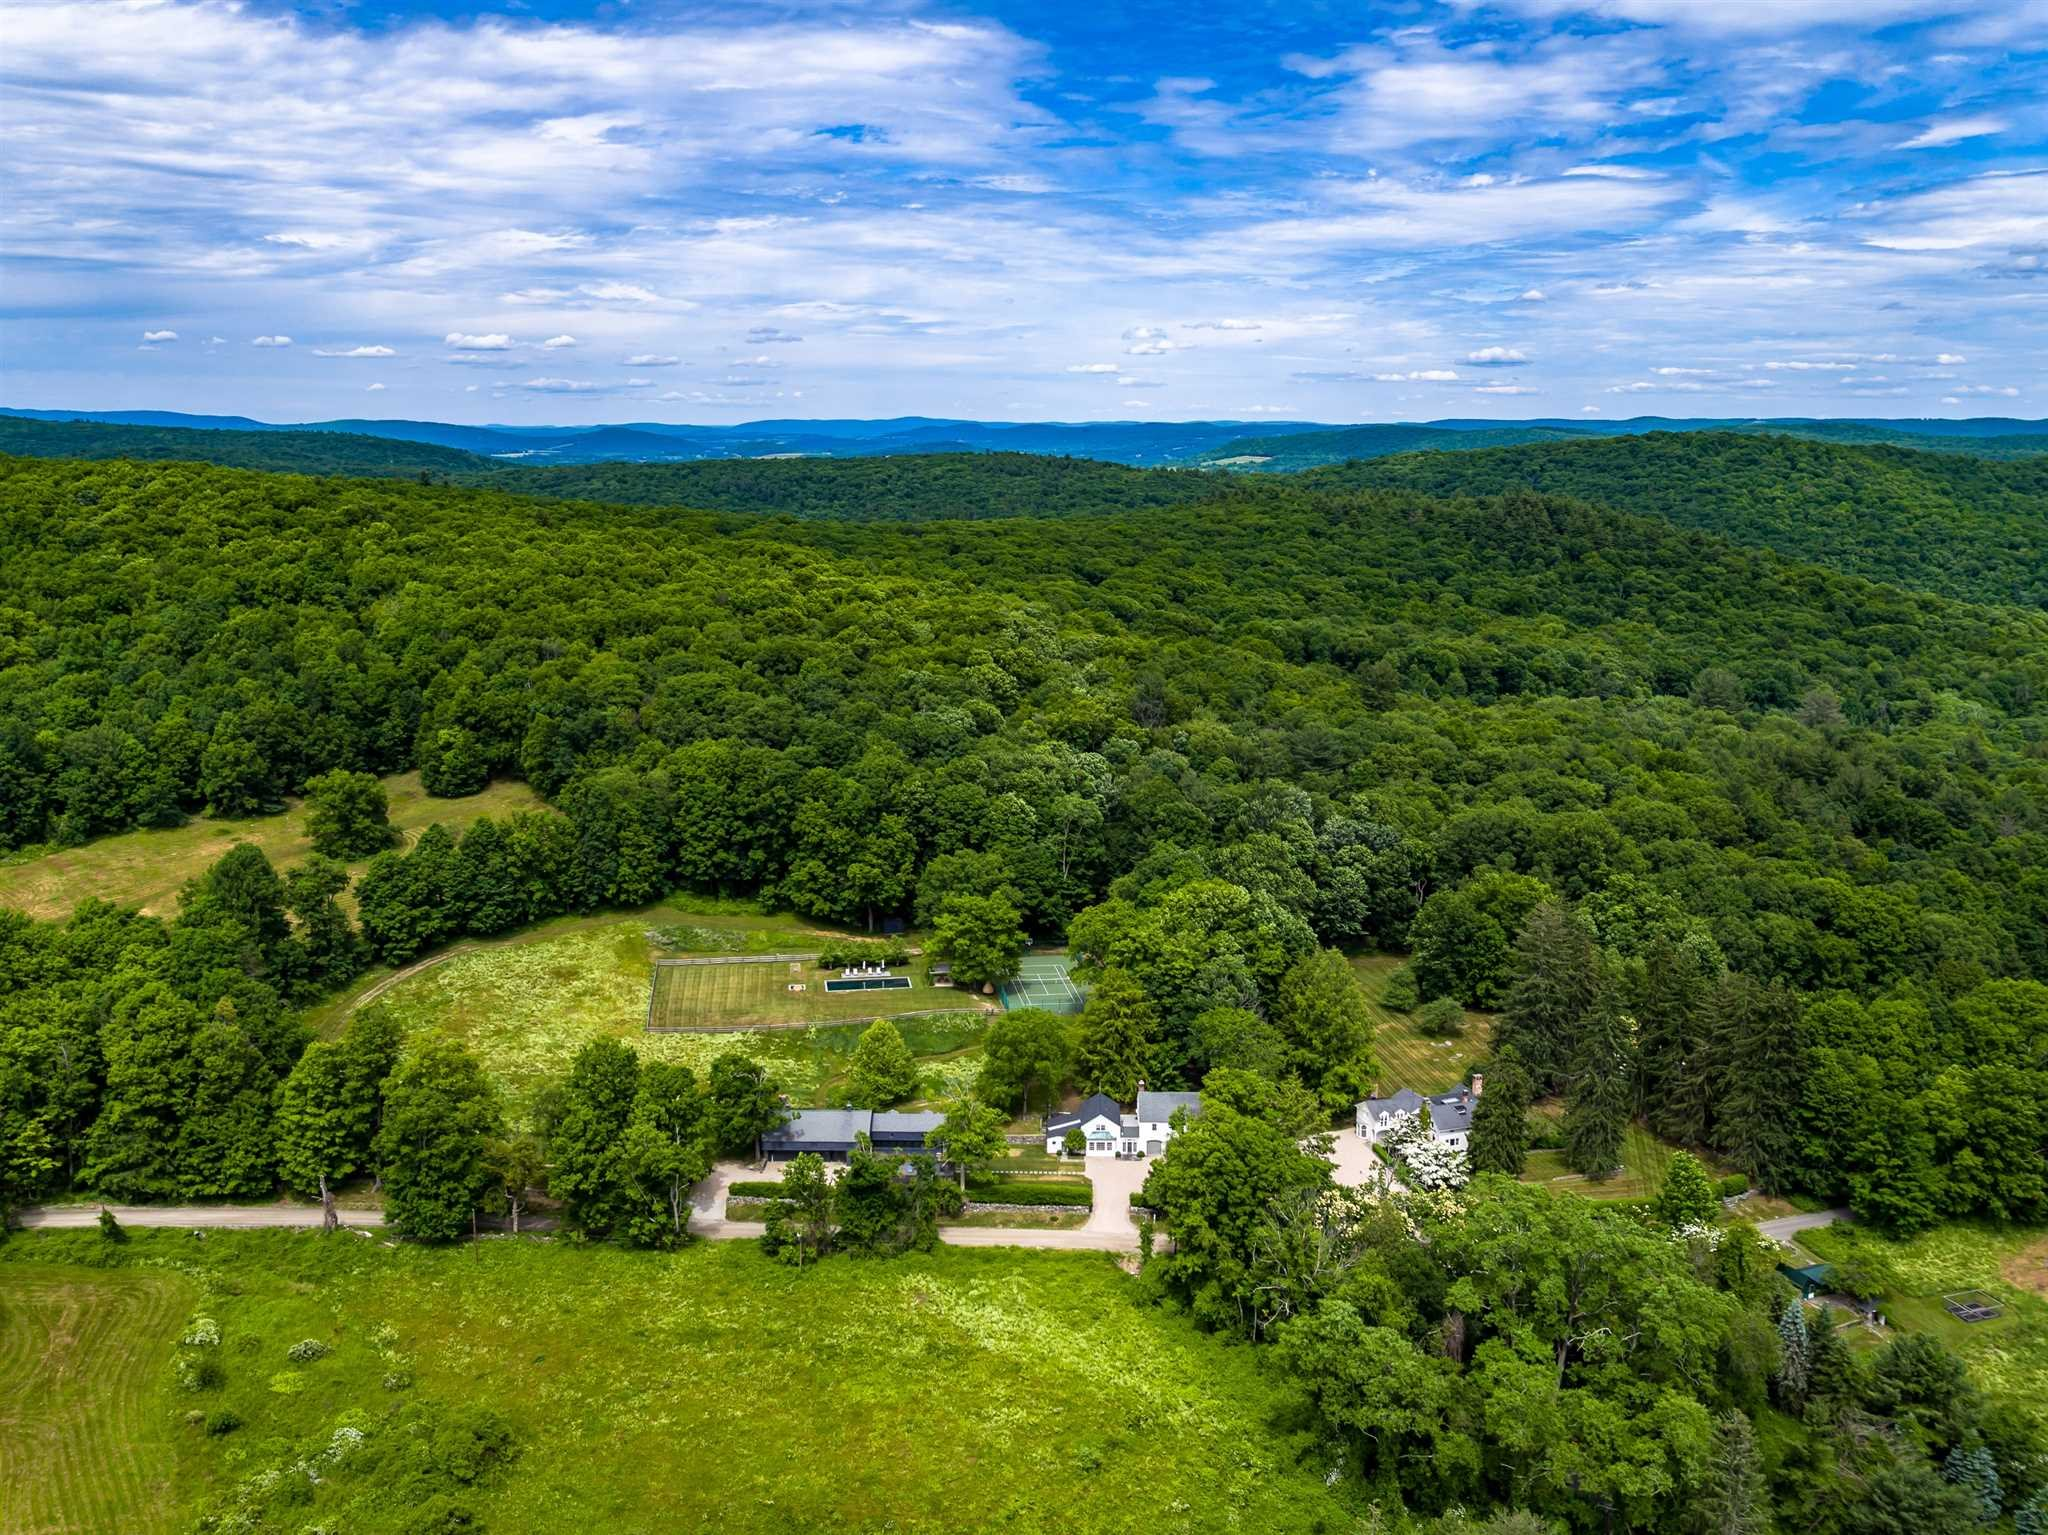 Single Family Home for Sale at 474-482 DEEP HOLLOW Road 474-482 DEEP HOLLOW Road Washington, New York 12545 United States